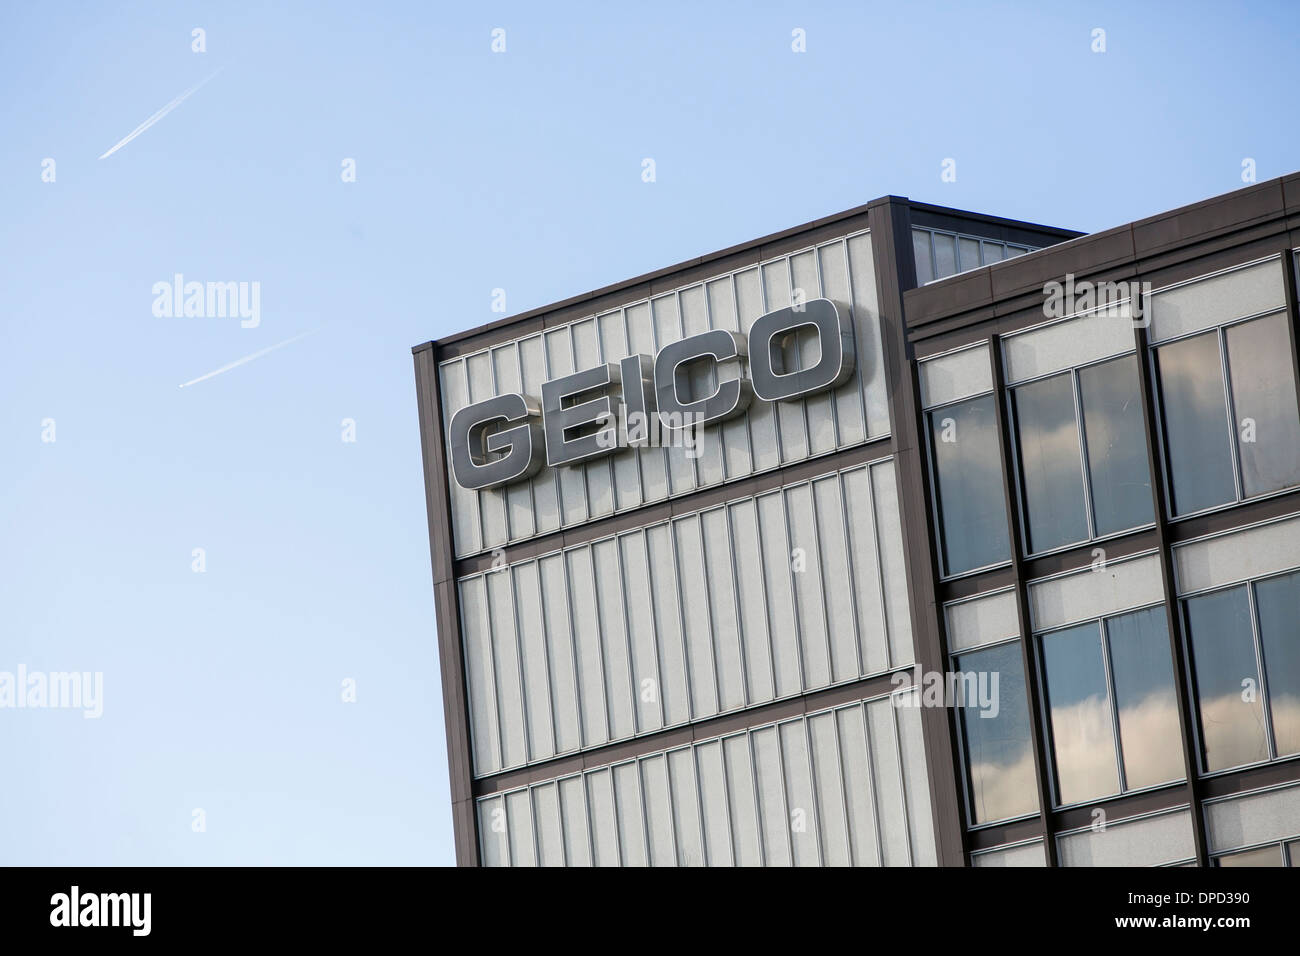 The headquarters GEICO, also known as the Government Employee Insurance Company in Chevy Chase, Maryland. - Stock Image